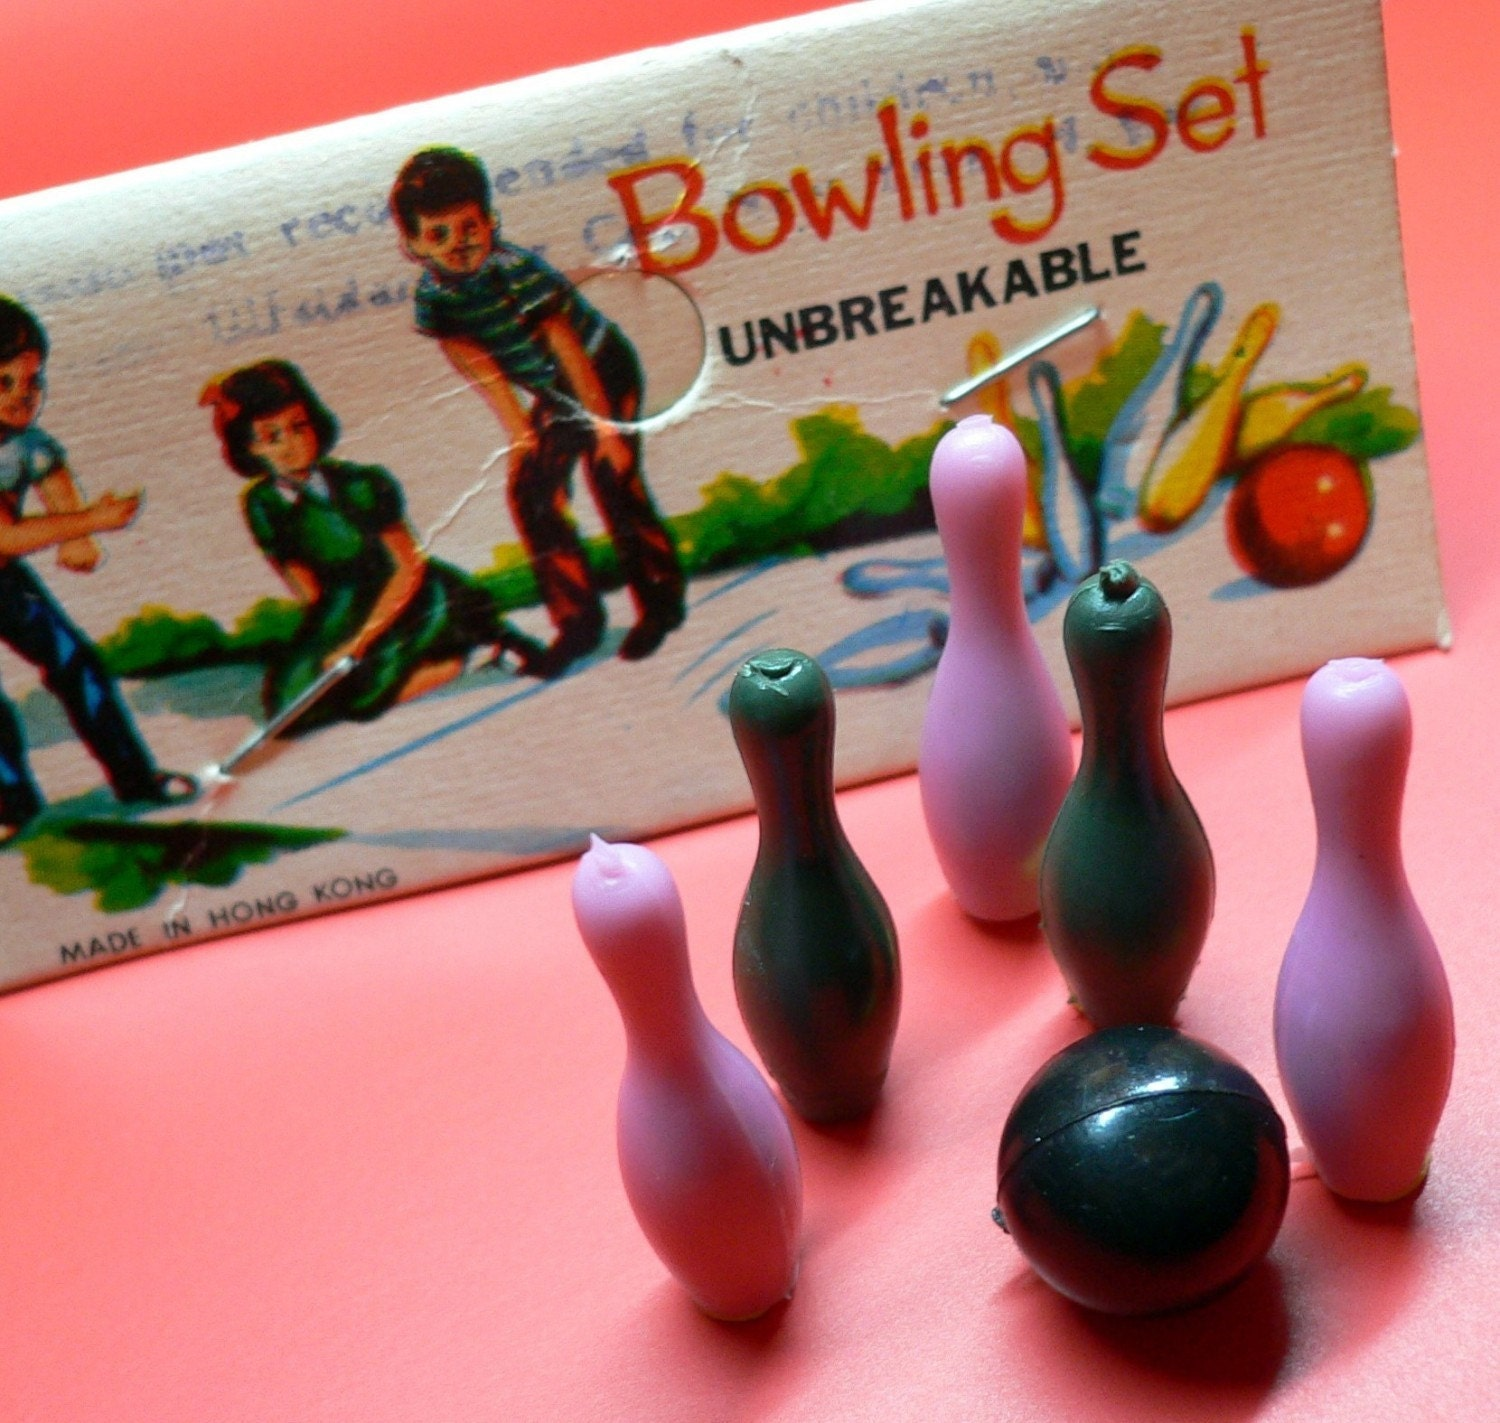 3pkgs MINIATURE BOWLING SETS Vintage Plastic Party Favors